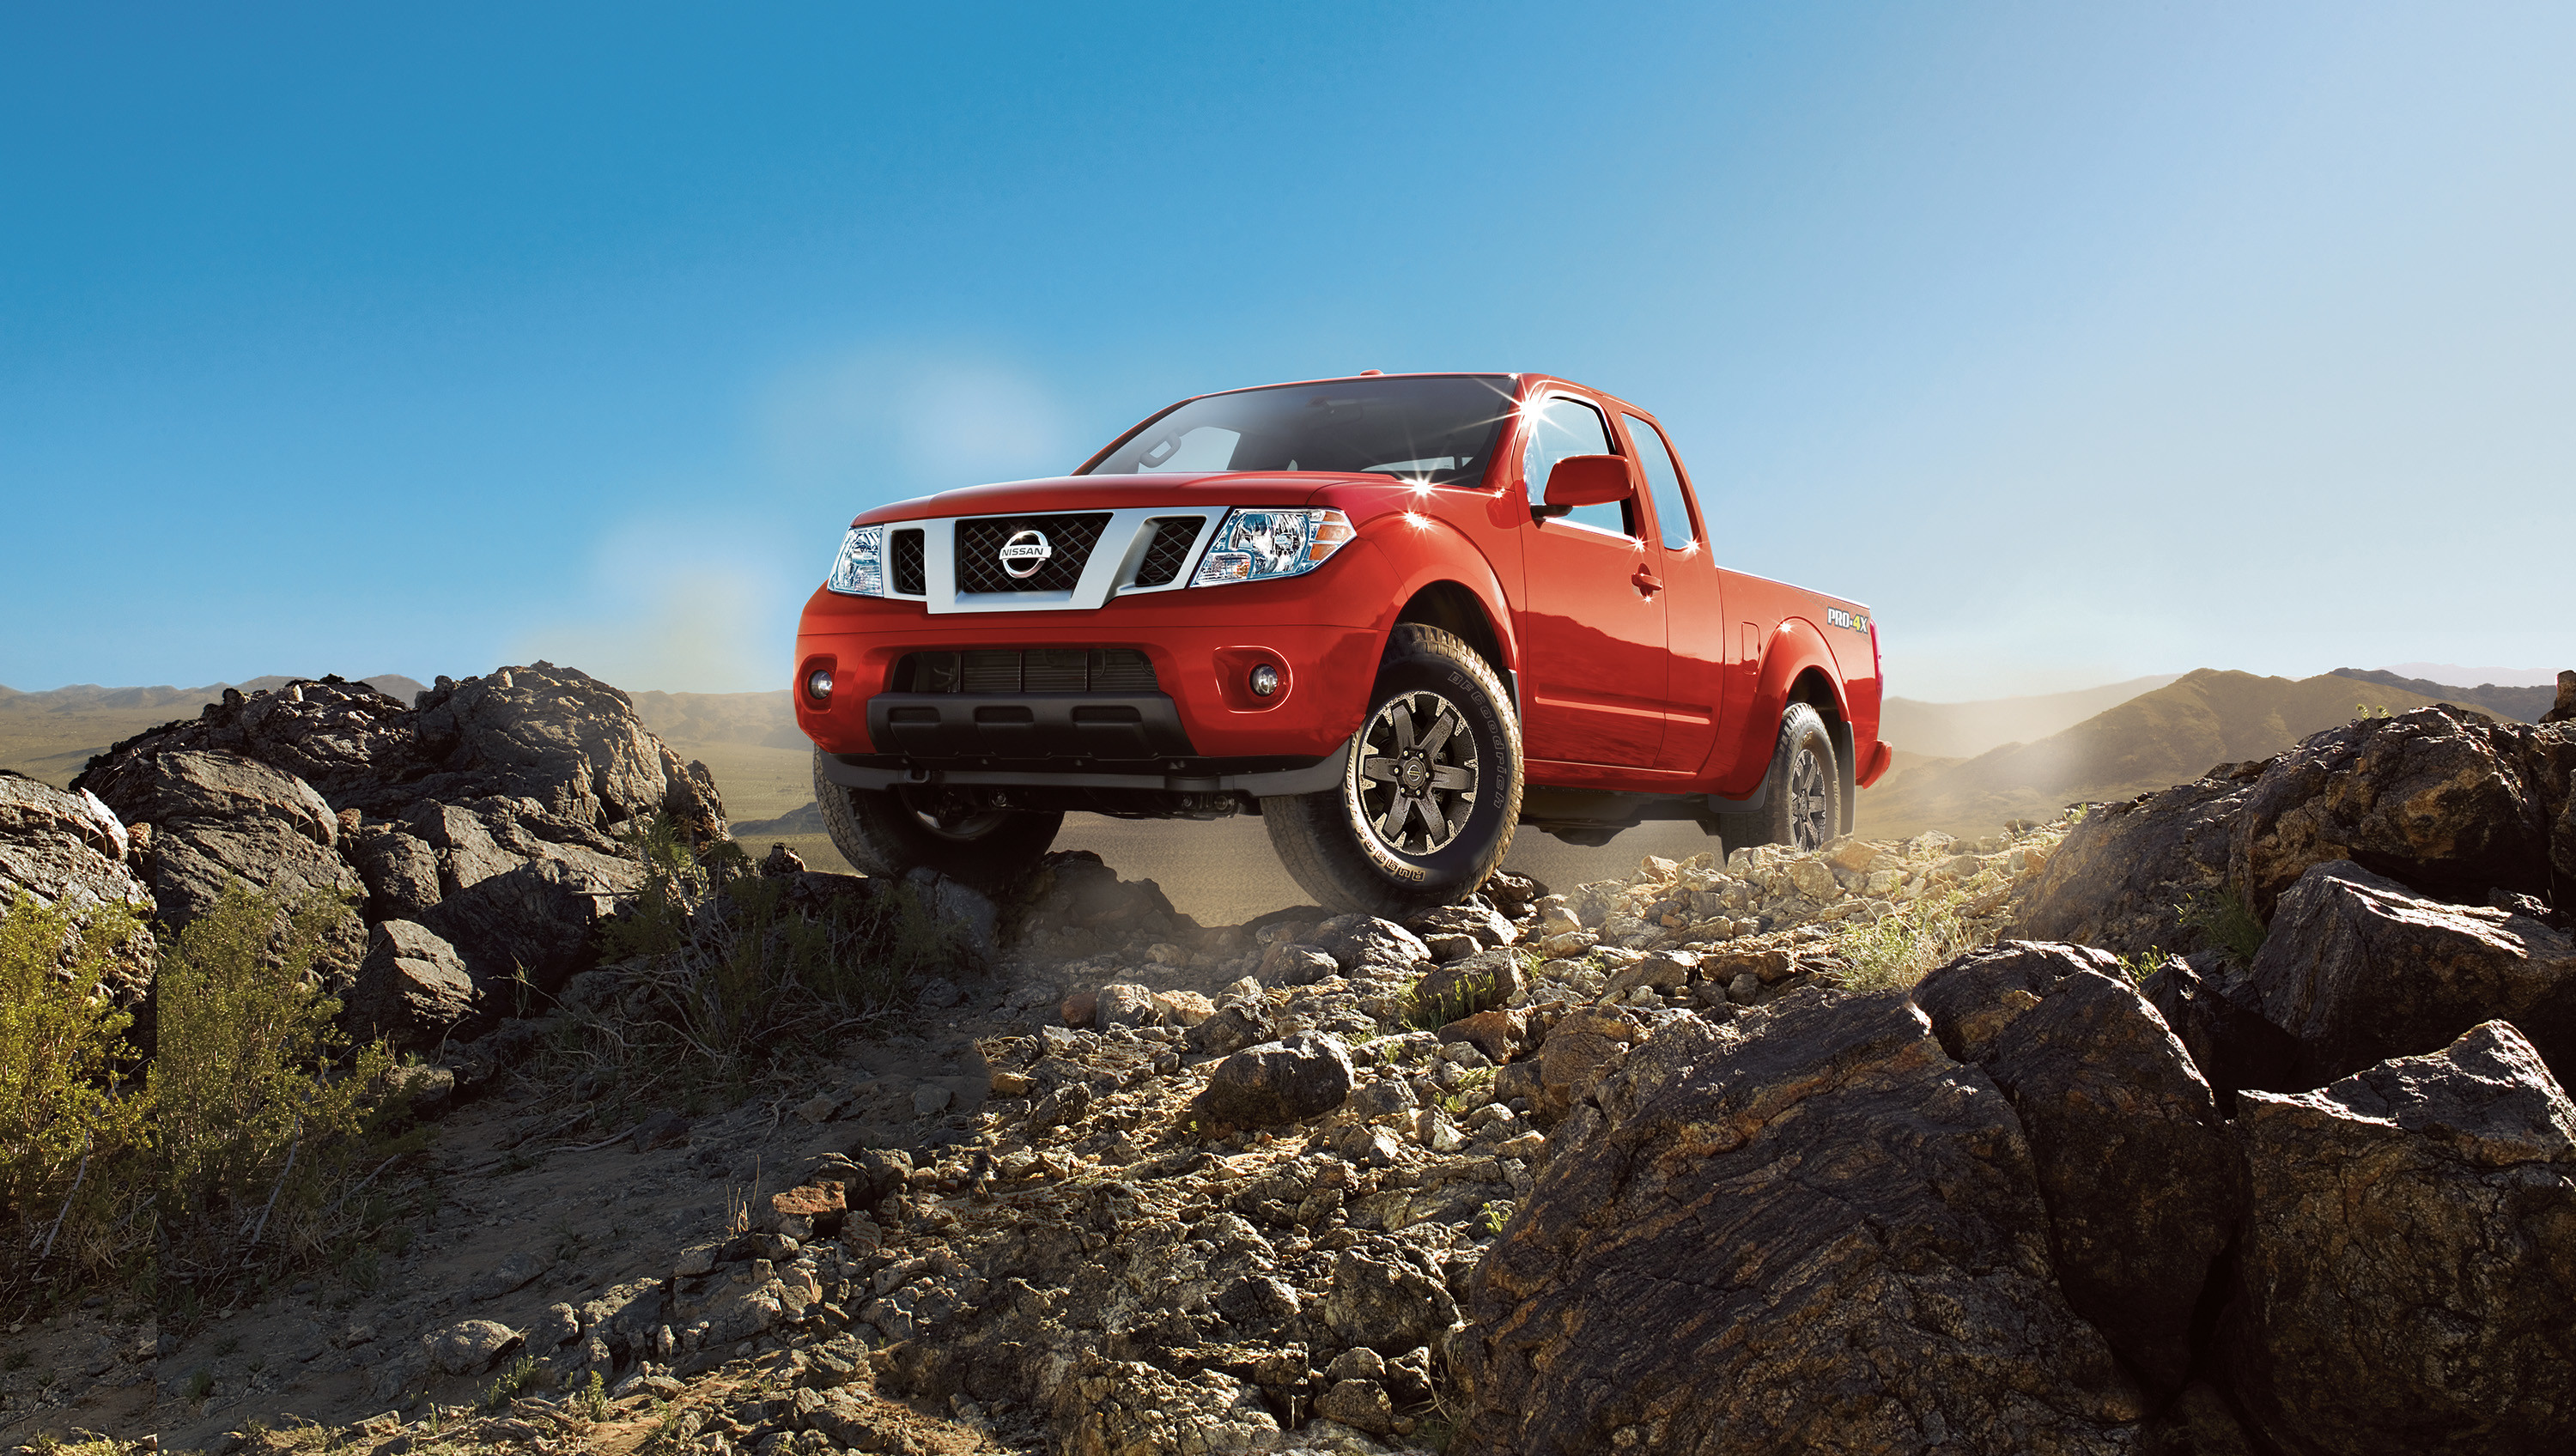 Used Nissan Trucks for Sale in Auburn at S&S Best Auto Sales